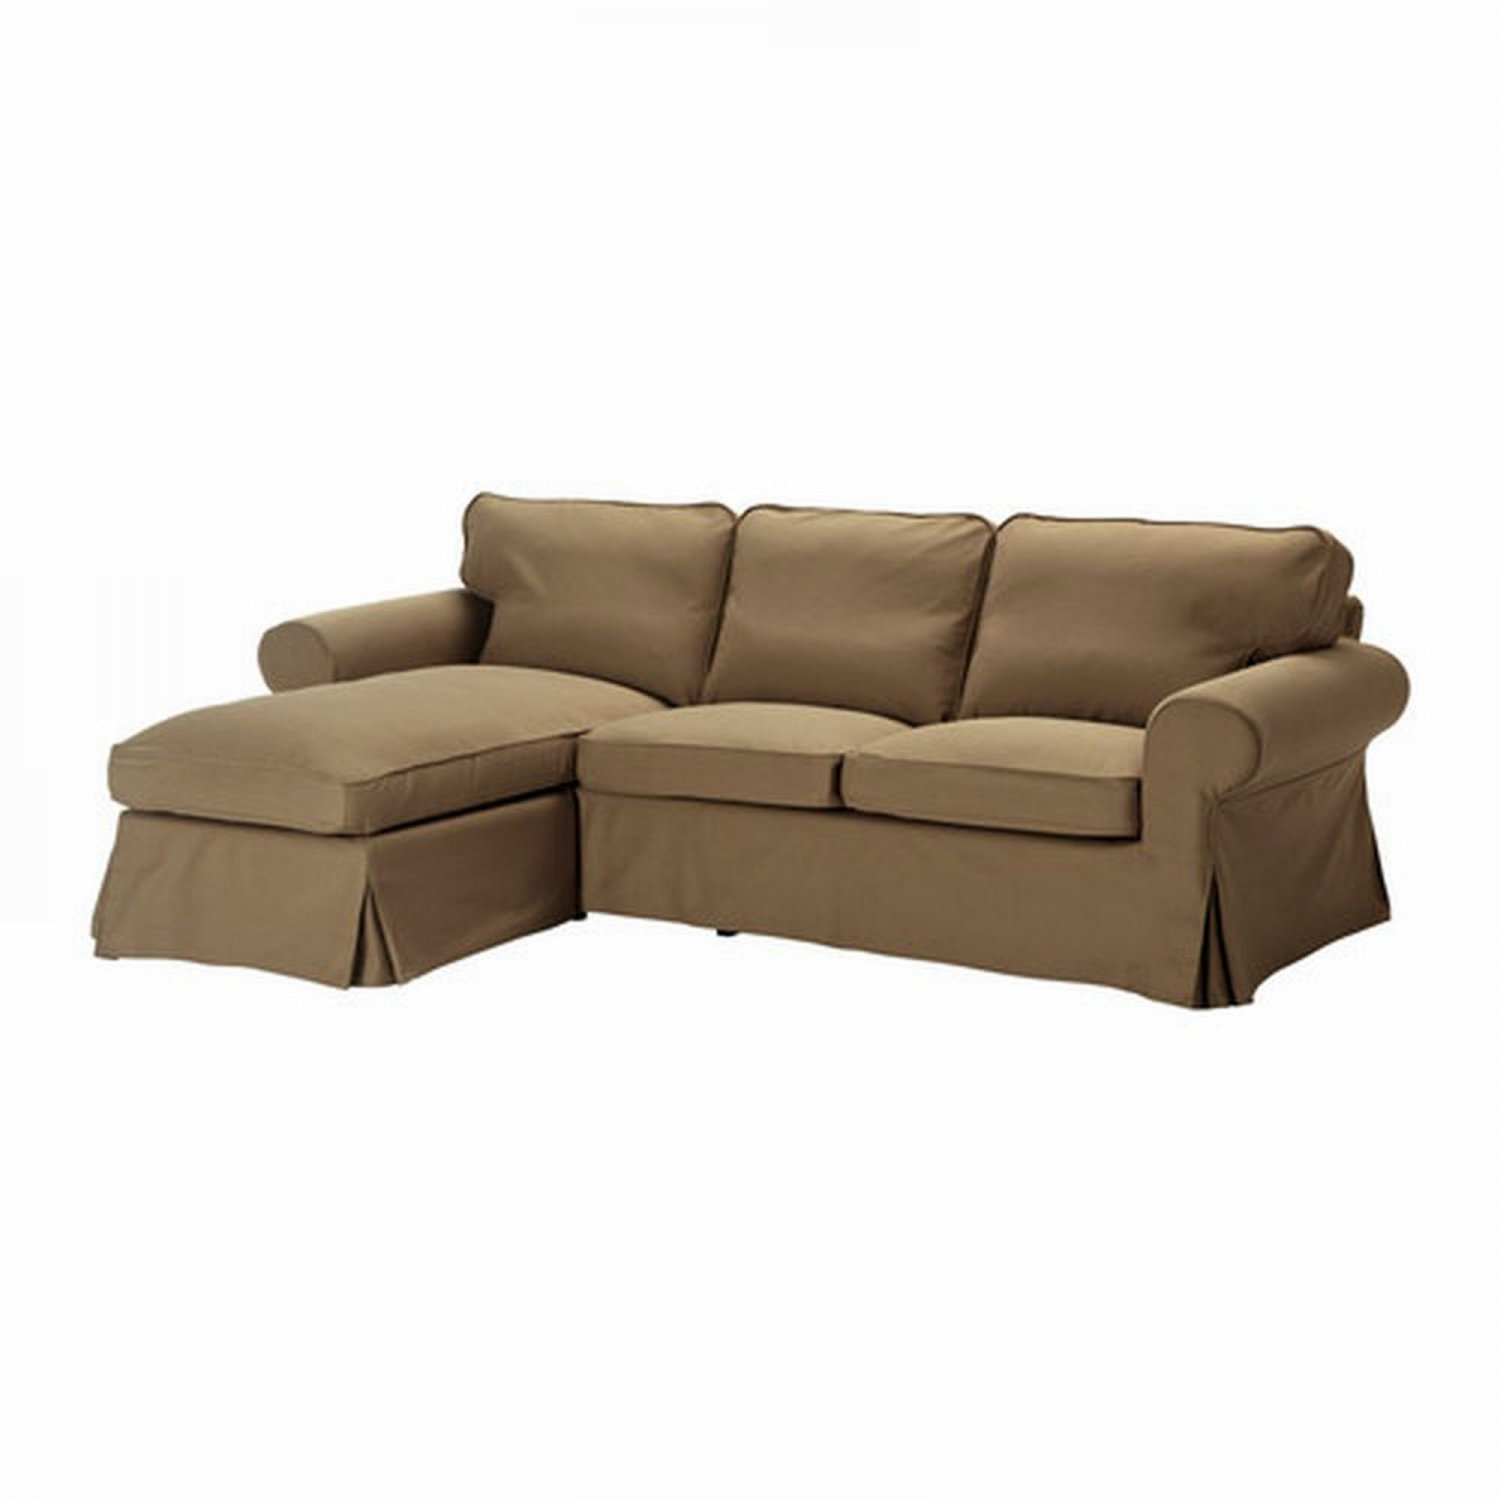 Ikea ektorp 2 seat loveseat sofa with chaise cover slipcover idemo light brown Loveseat slipcover